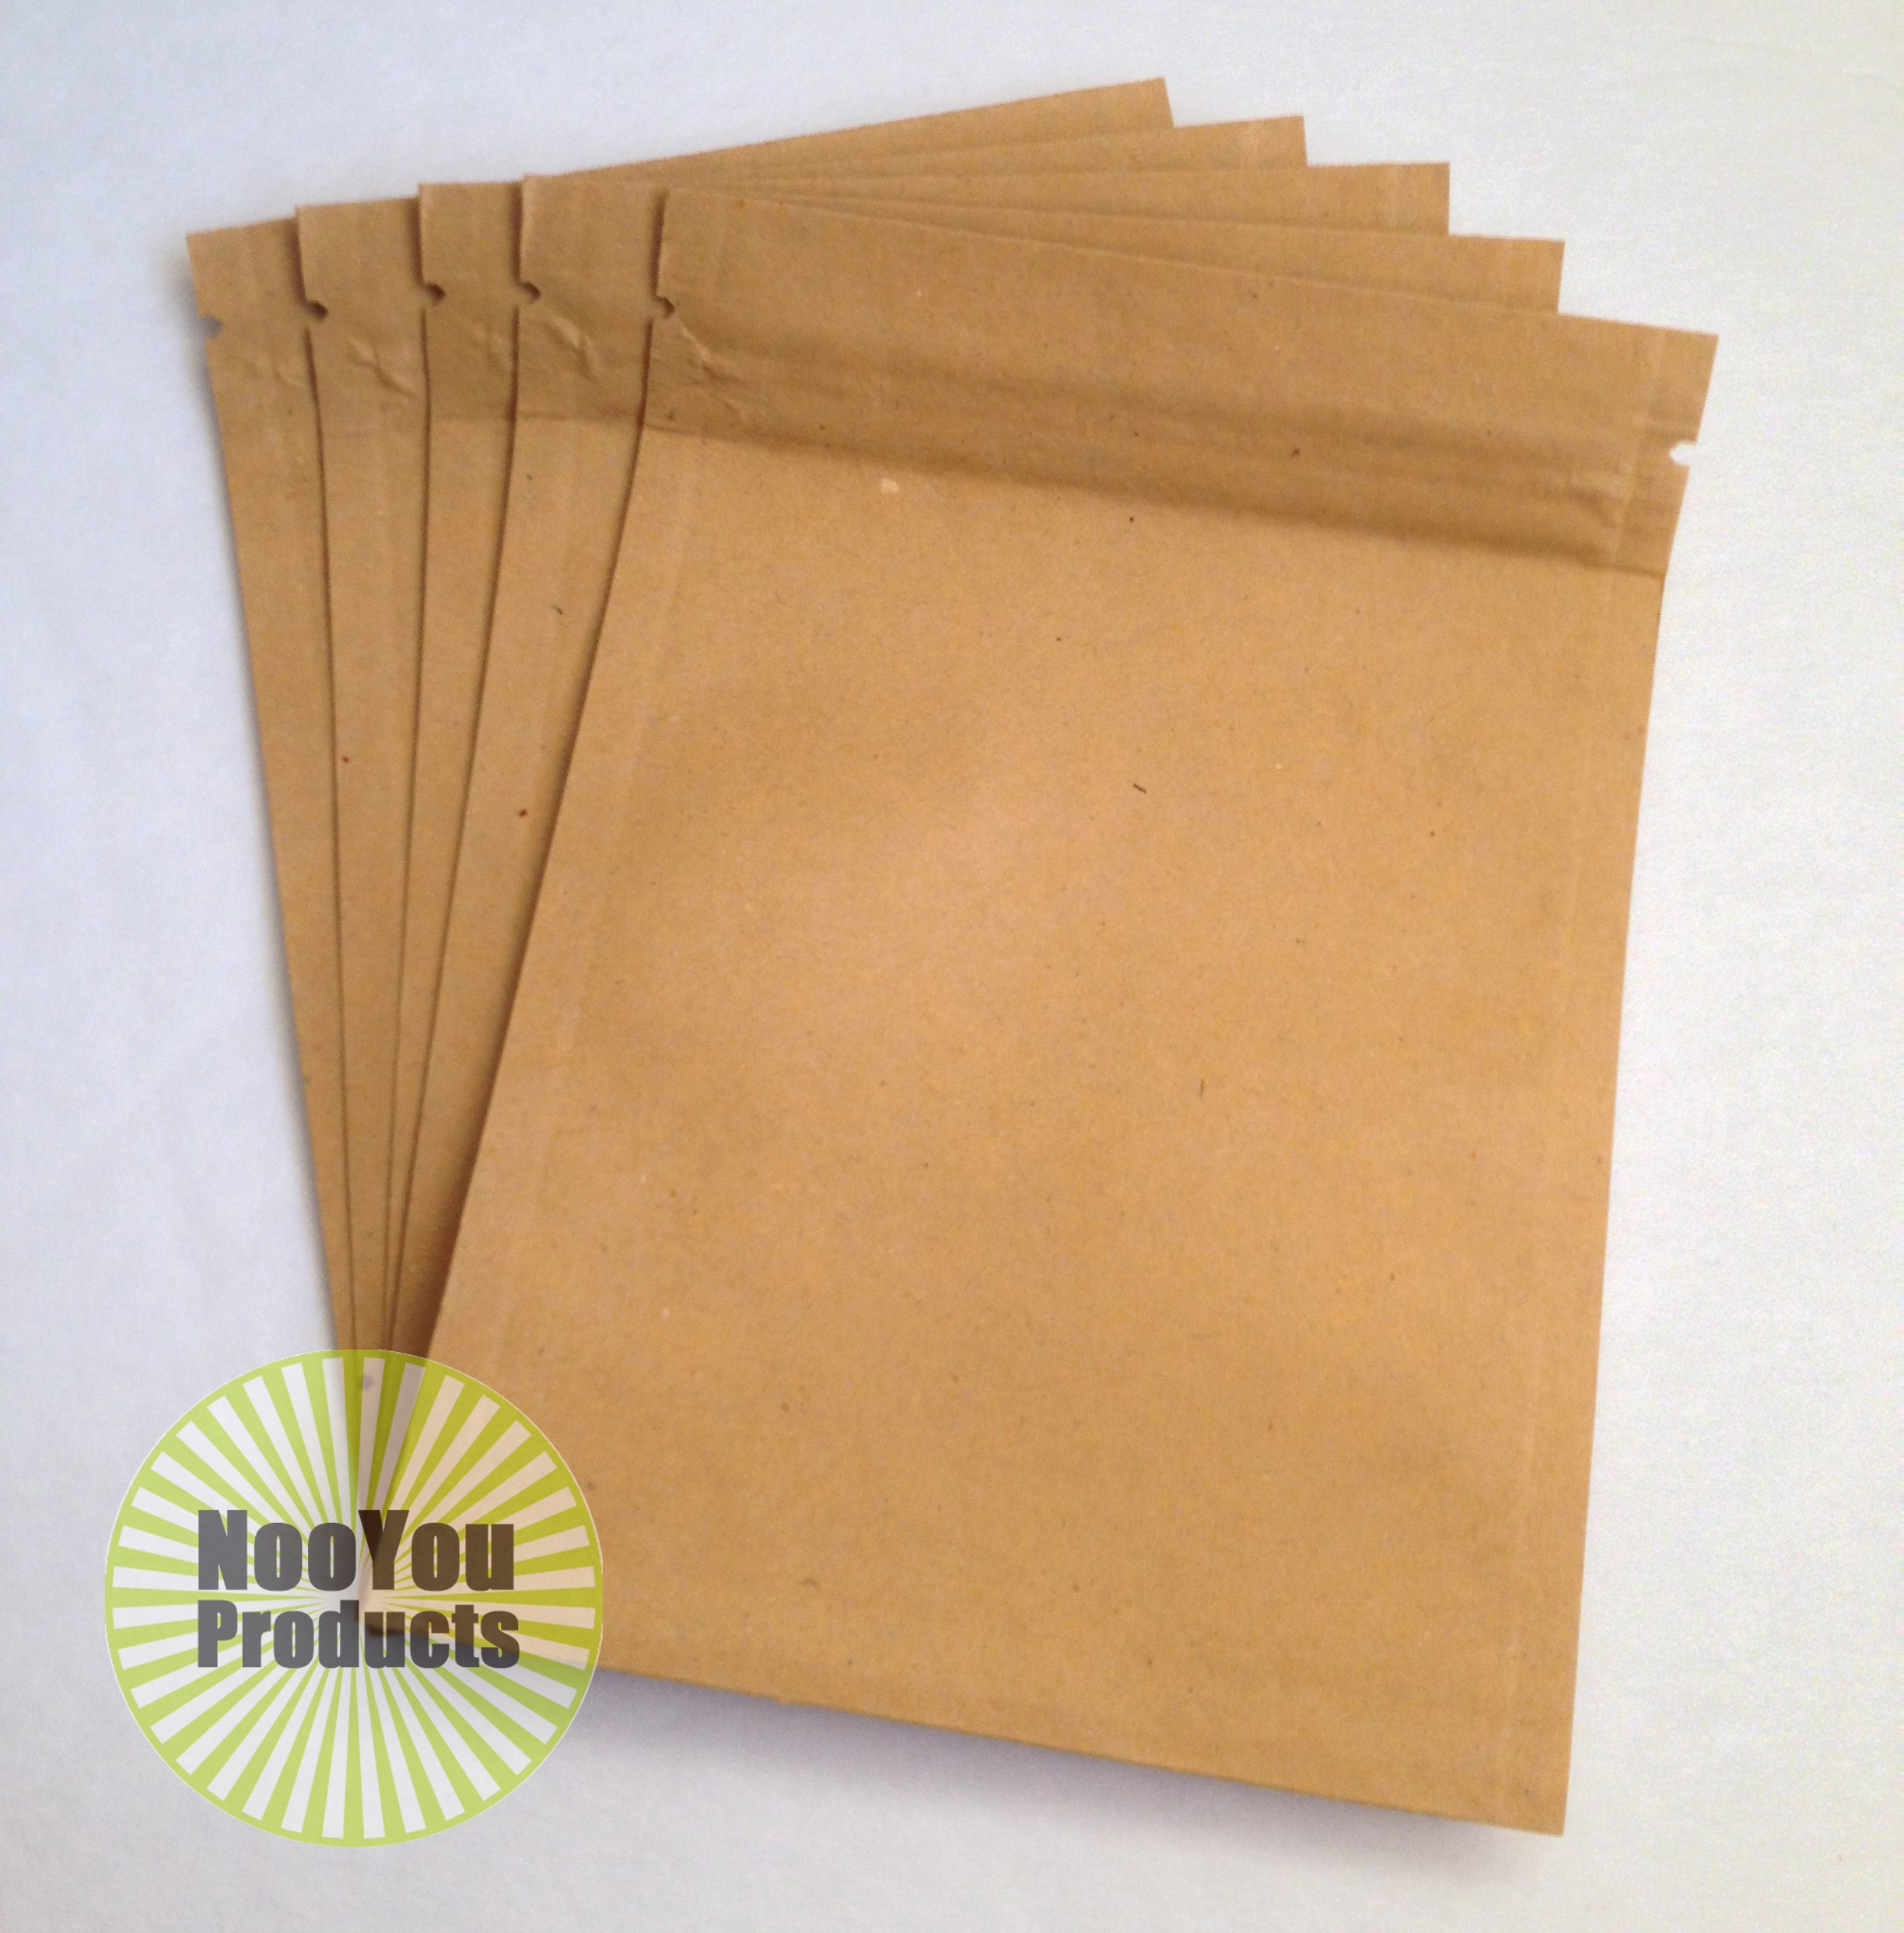 Brown Kraft Paper 3.5''x5'' Heat Seal Bags, Safe Food Storage, Smell Proof Product Packaging, Durable Reusable Survivalist Baggies (Herbs, Seeds, Tea, Coffee, Pharma) Snack Size Bakery Bag (1,000) by NooYou Products